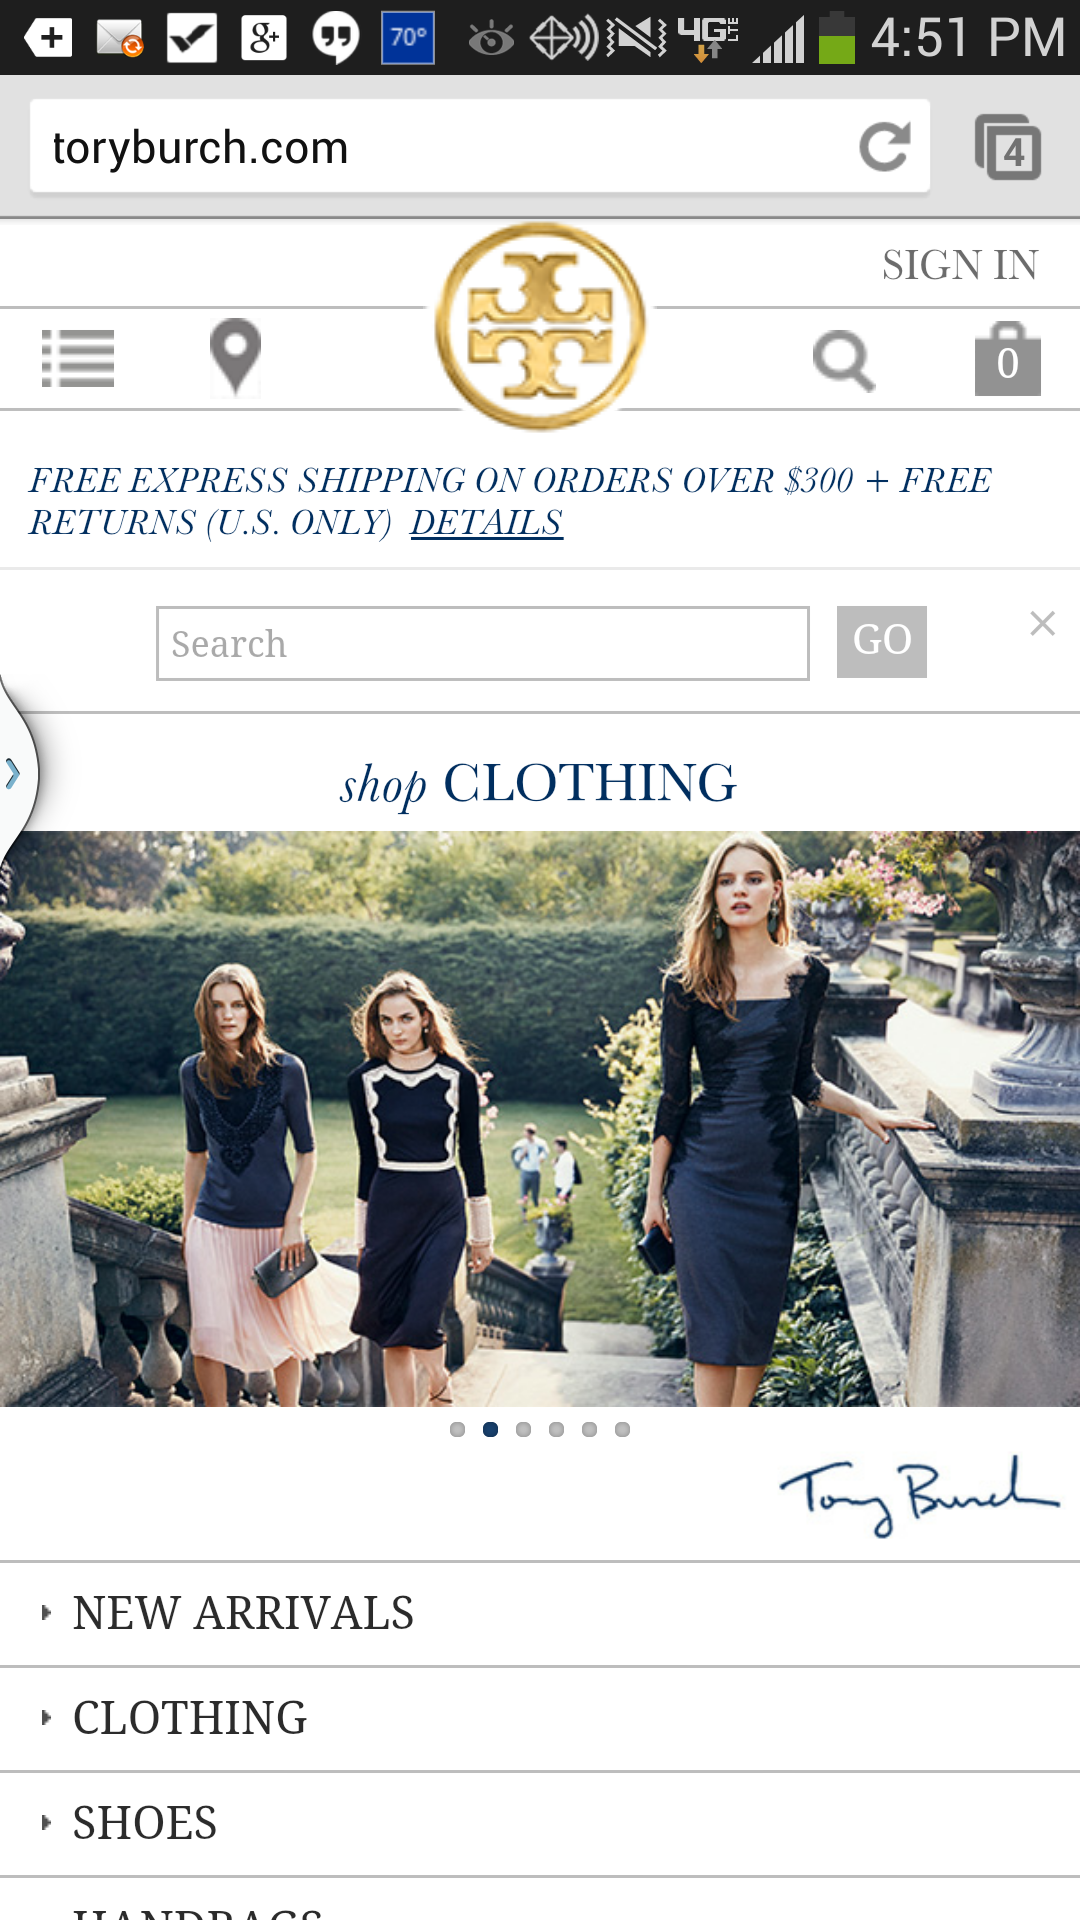 Tory Burch Mobile Site